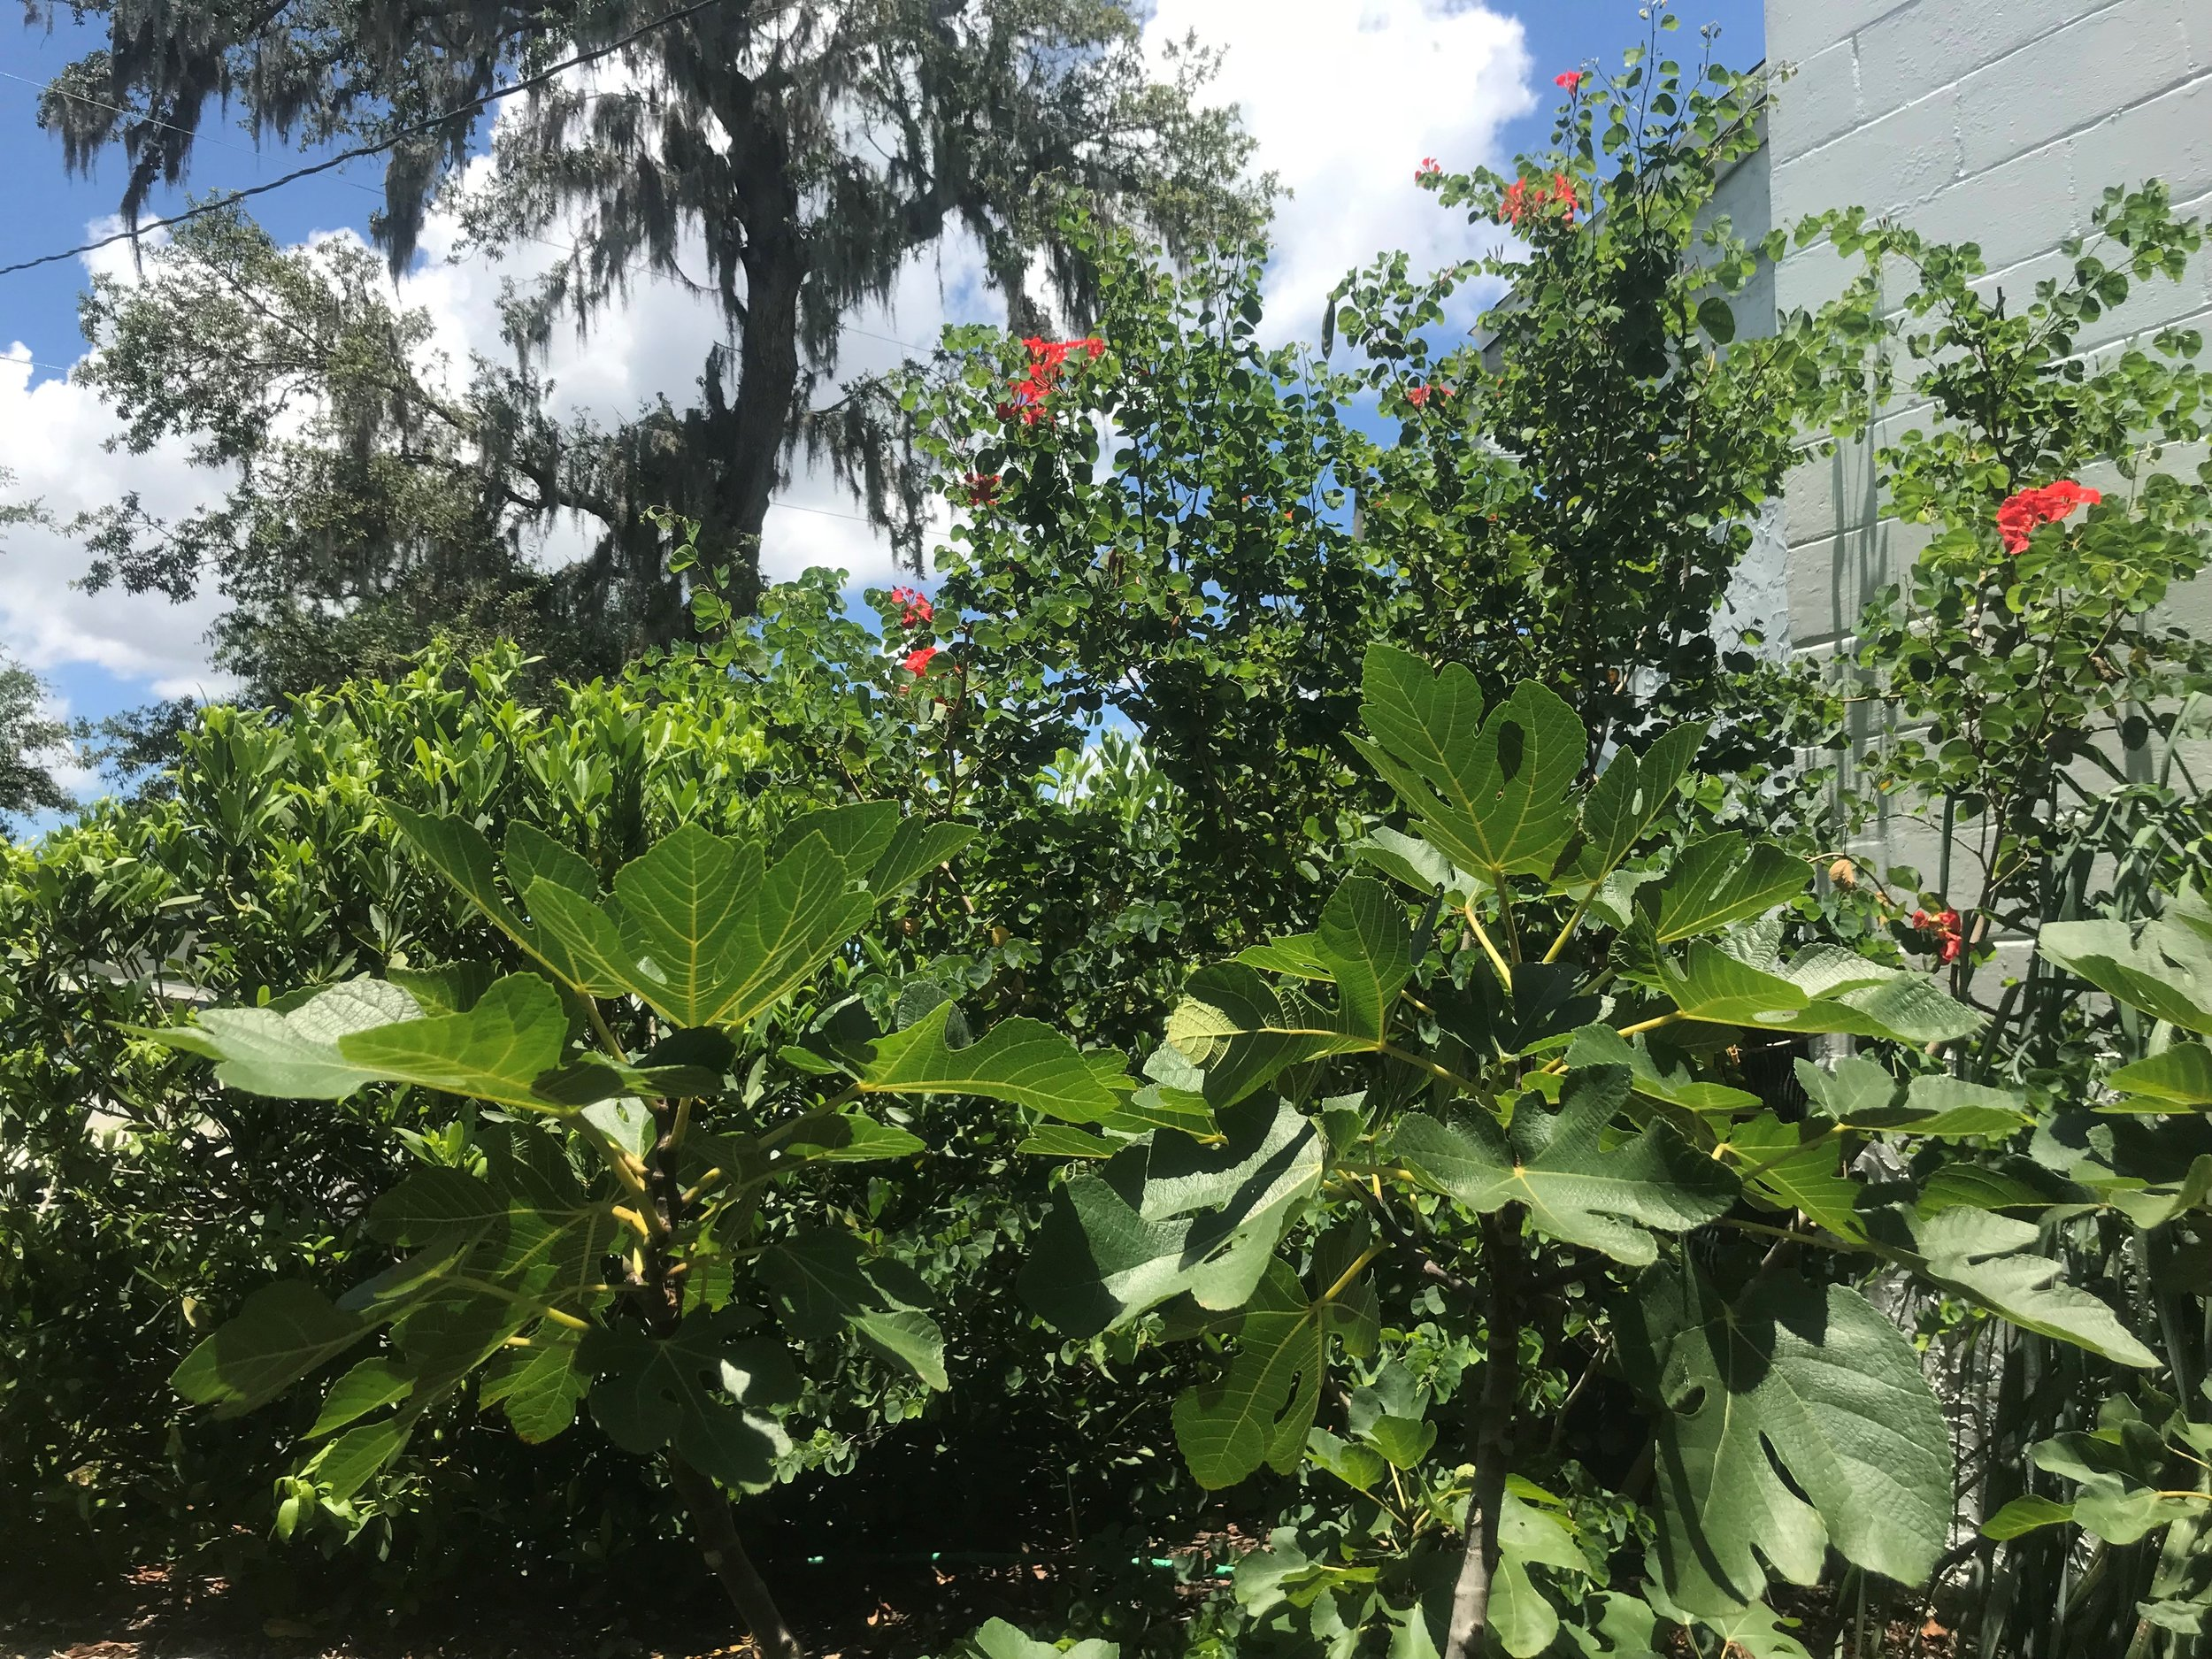 Brown Turkey Common Figs in foreground, the African Orchid Tree back right, and Florida Anise back left, framed by Live Oak.